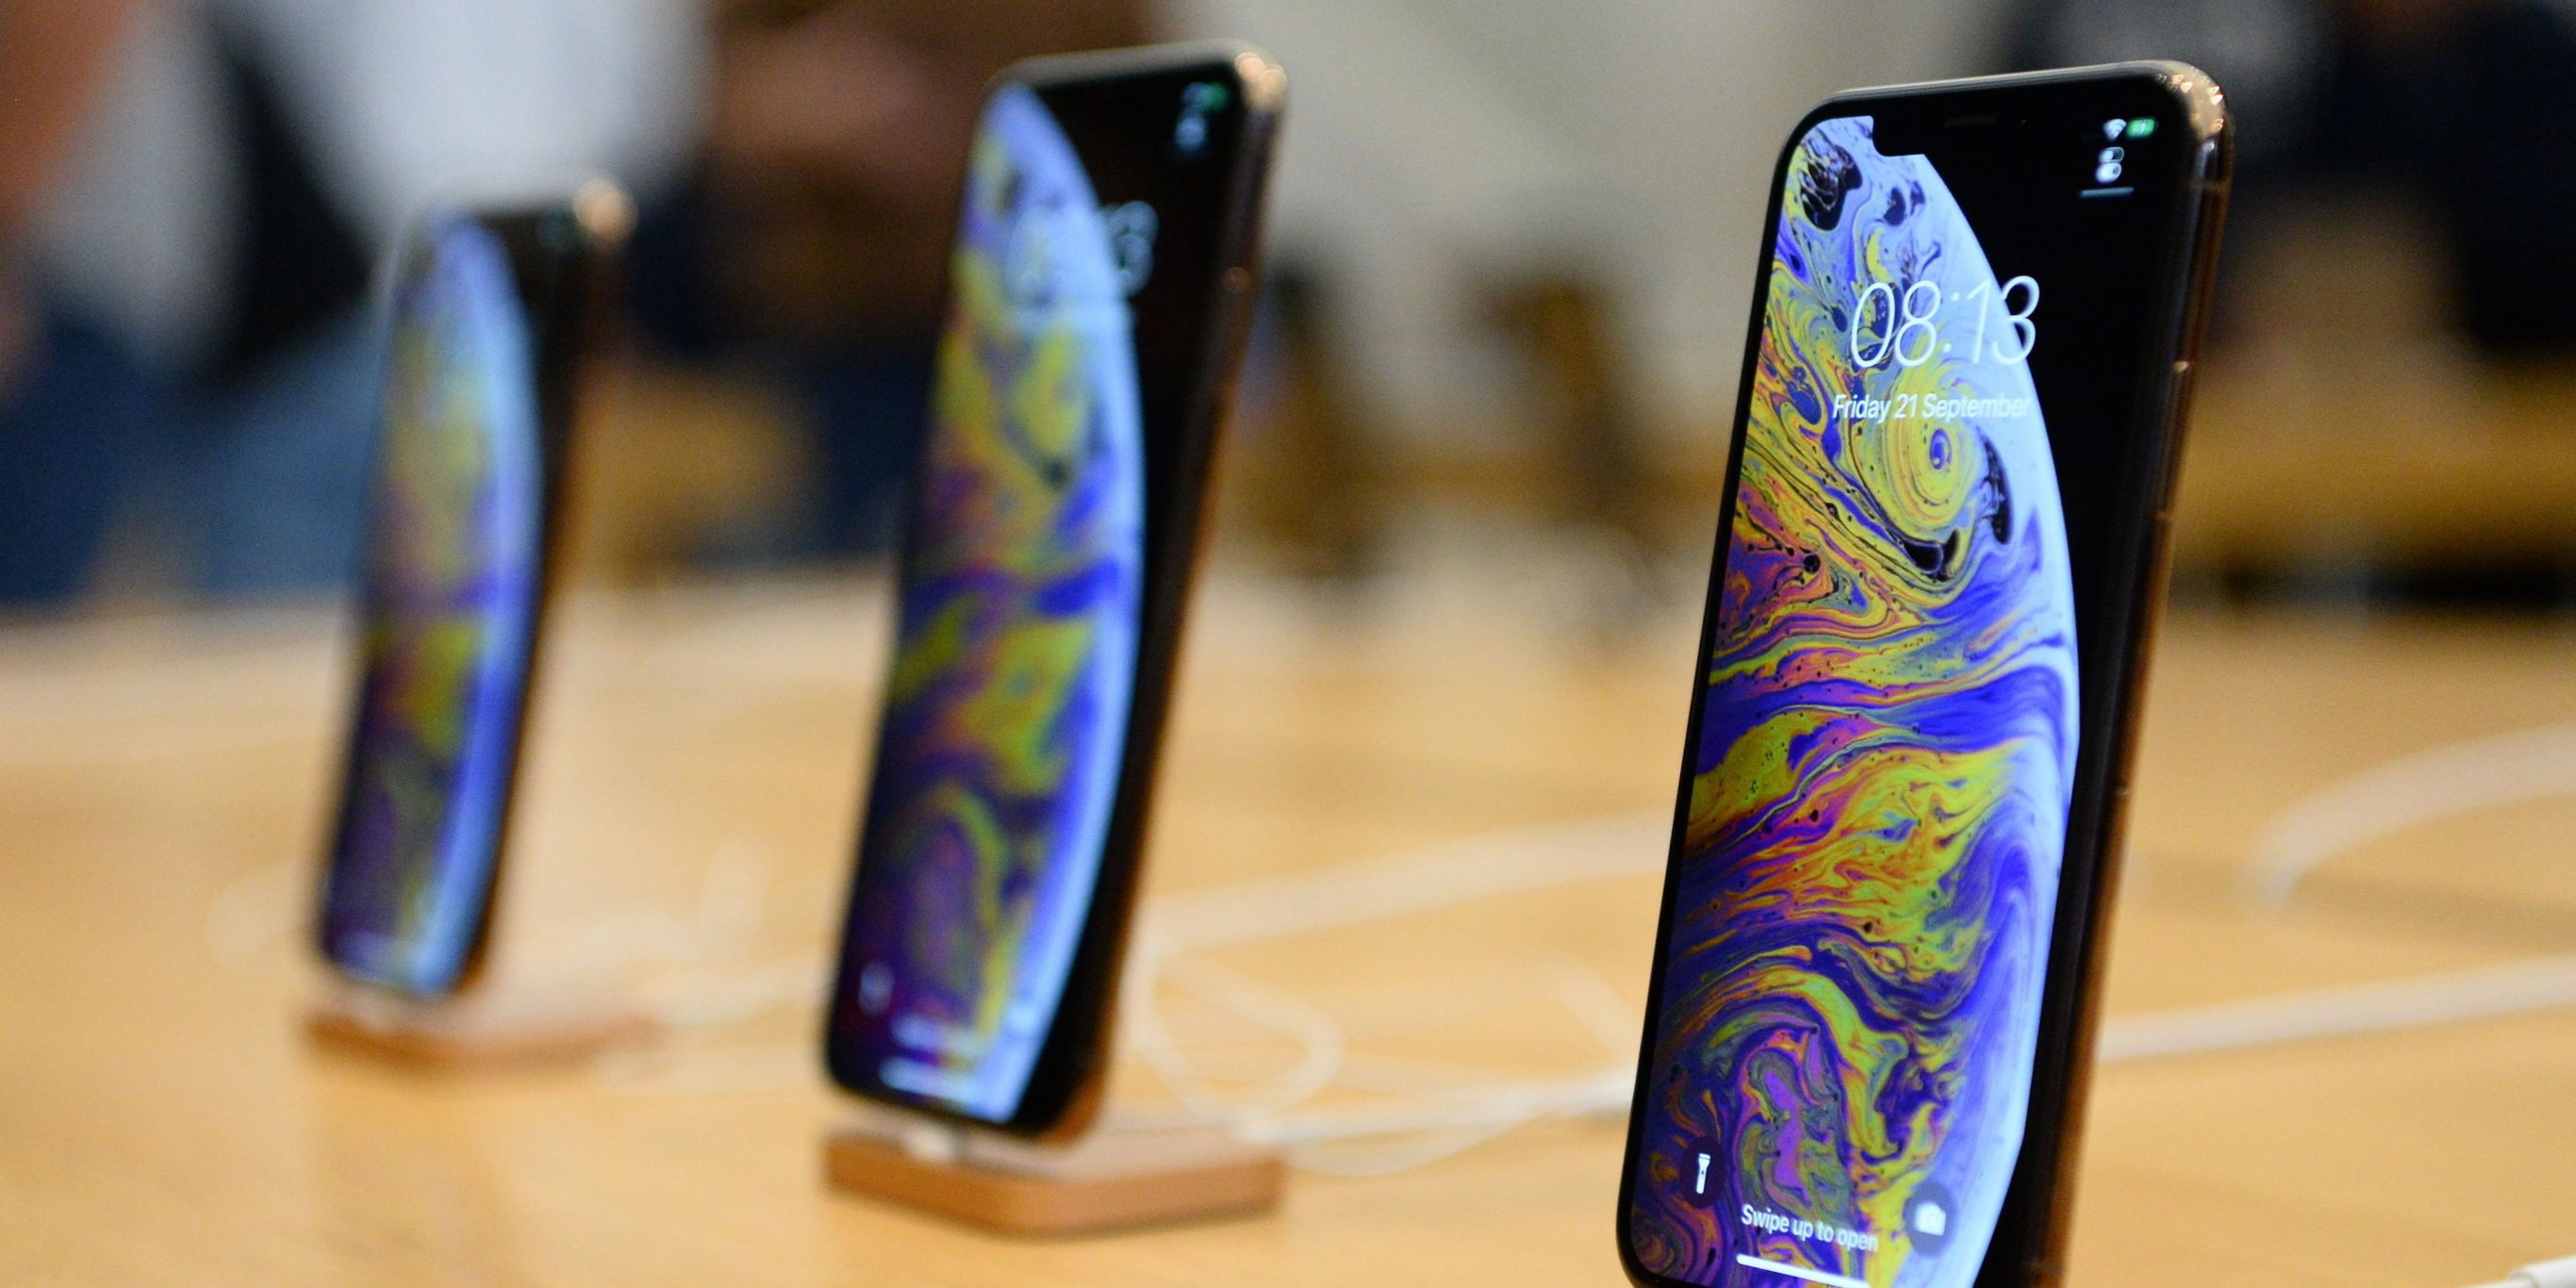 After announcing the iPhone 11, Apple has already stopped selling 3 older models of the iPhone — Here's the list of discontinued devices (AAPL)